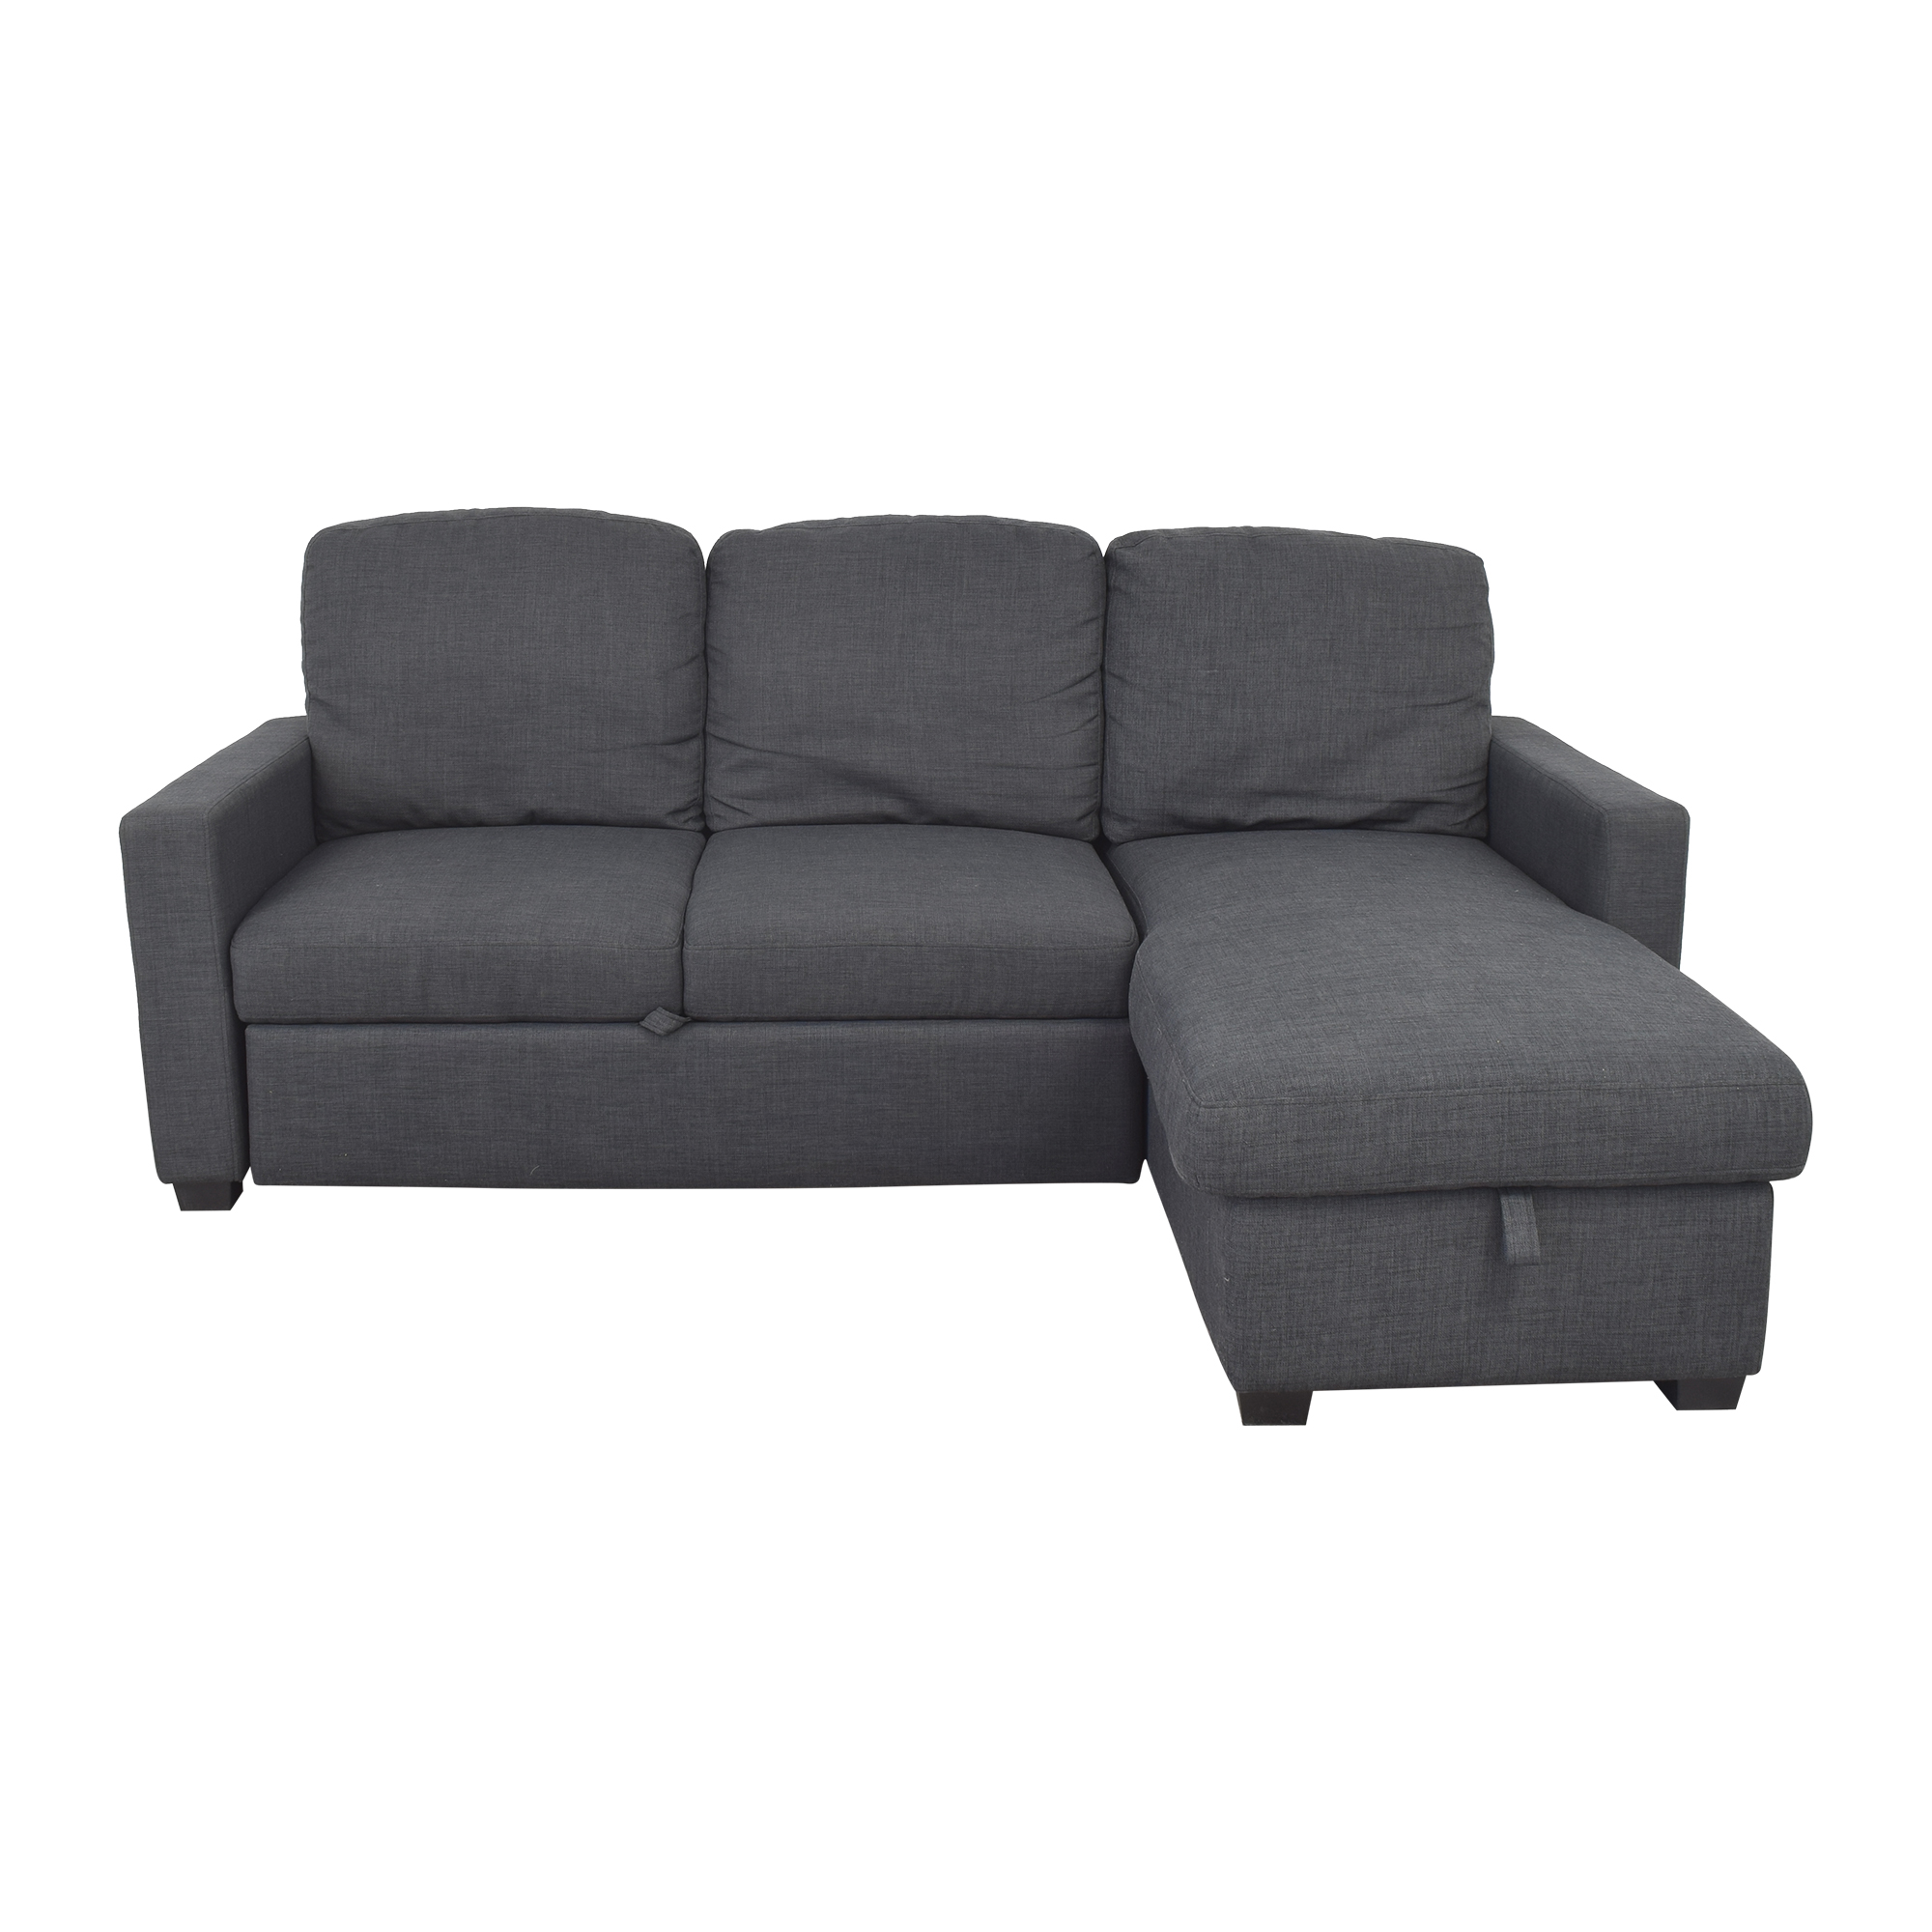 Target Target Newman Sleeper Sectional Sofa dark grey